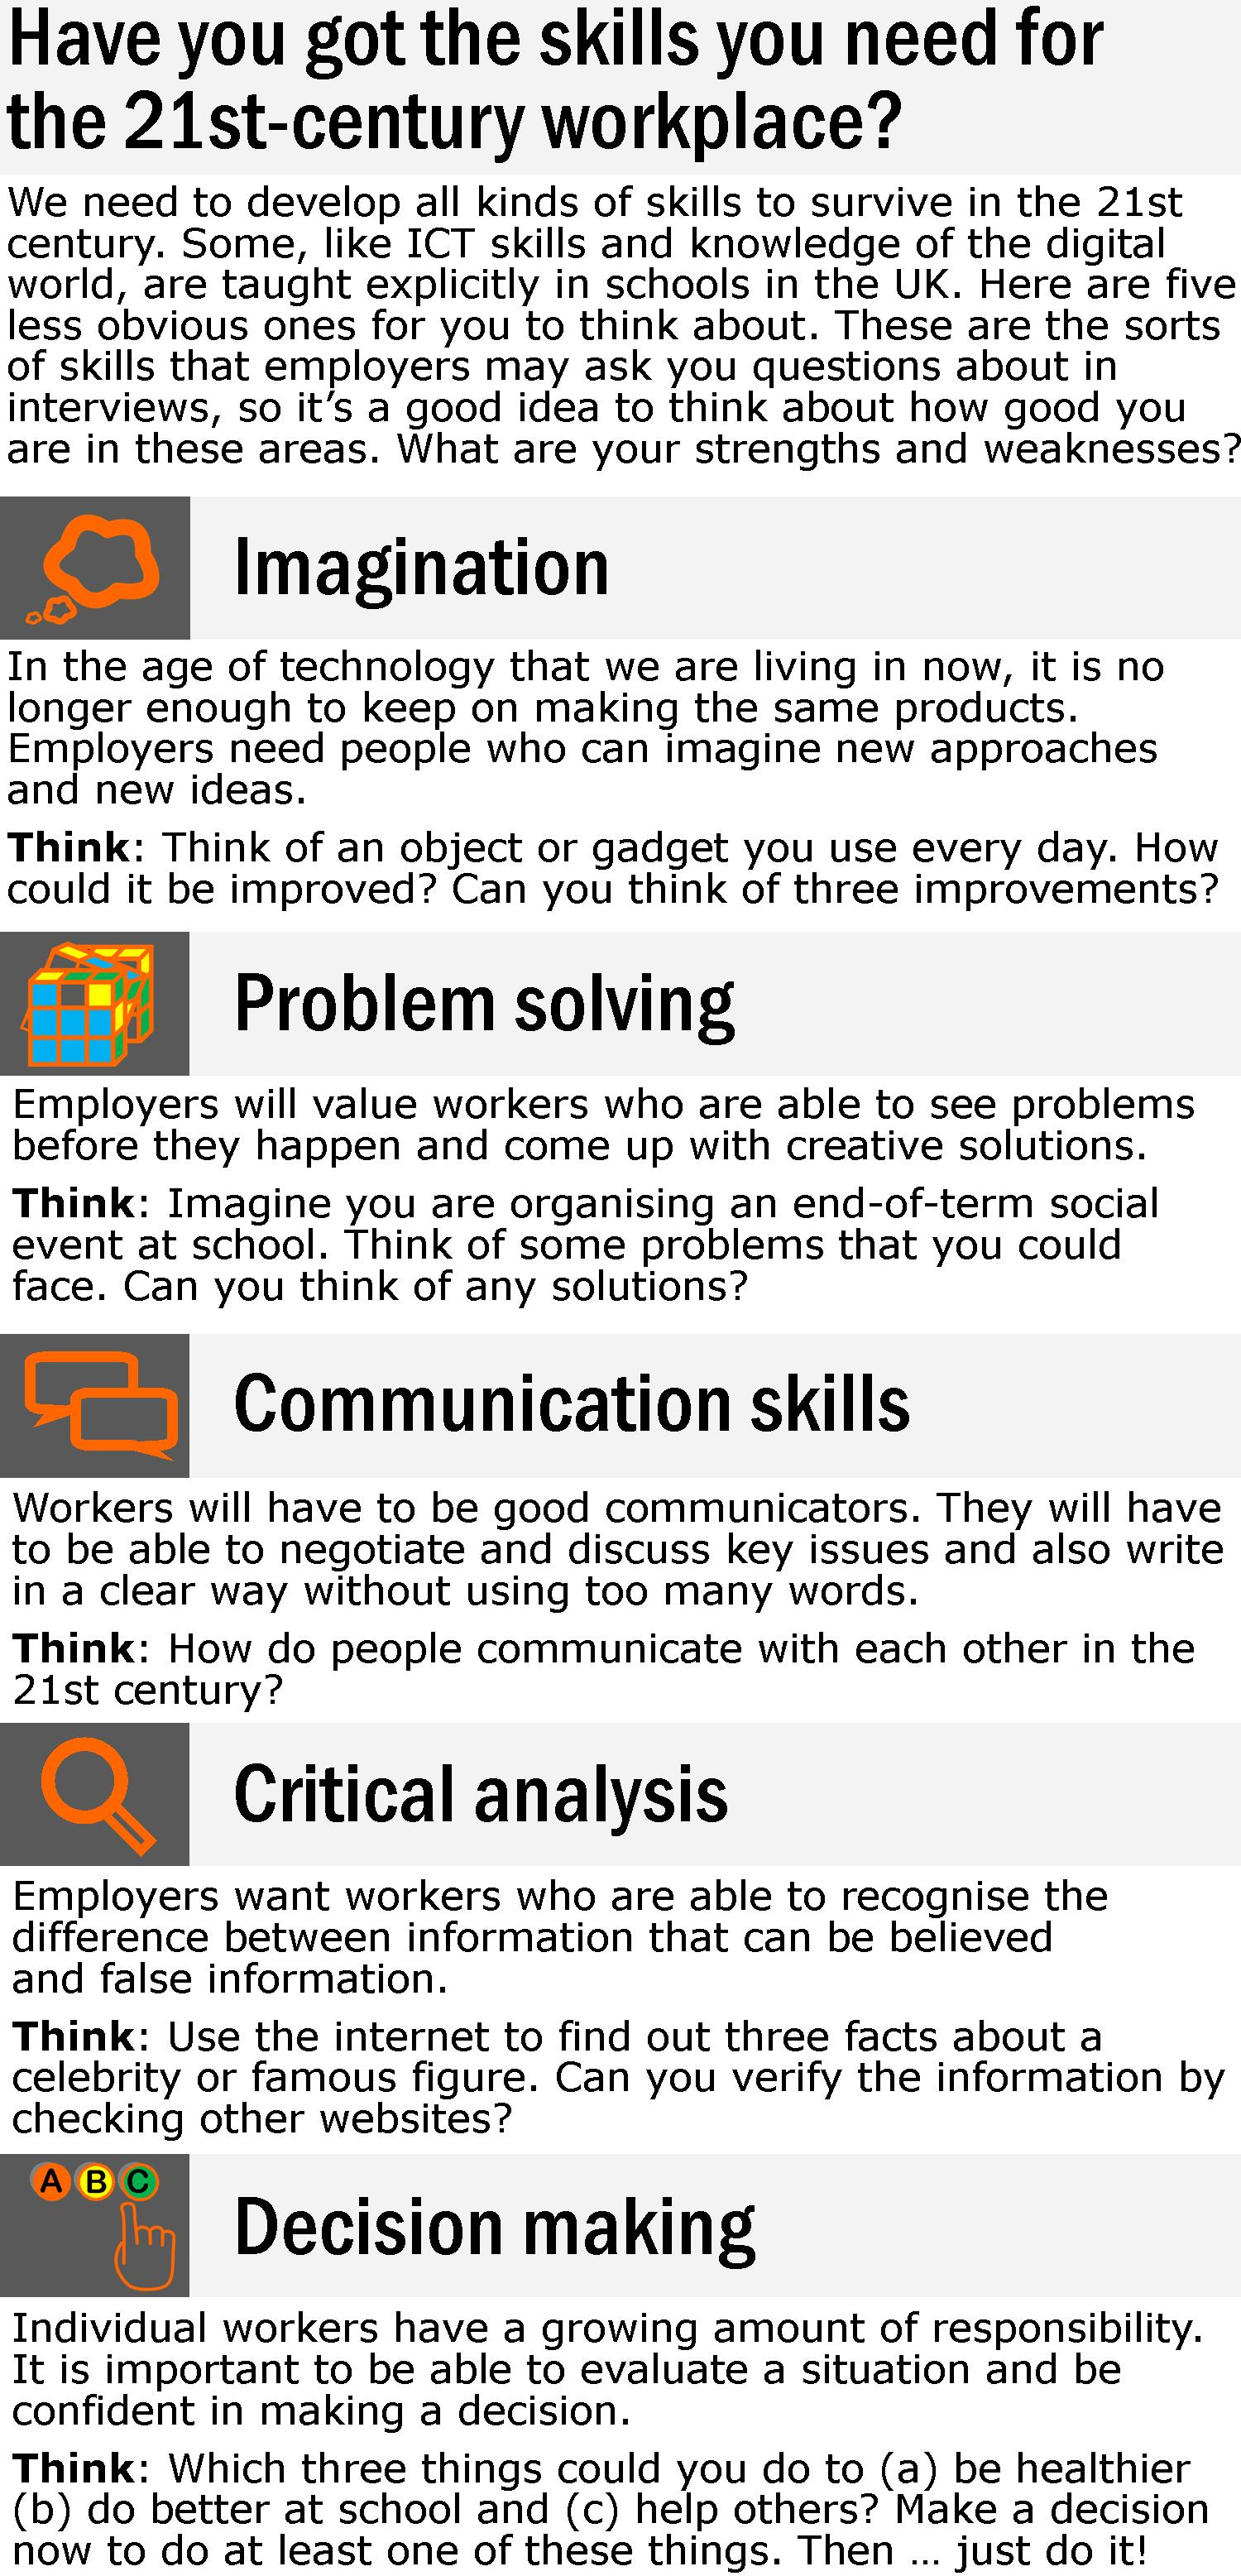 Skills For The 21st Century Workplace Learnenglish Teens